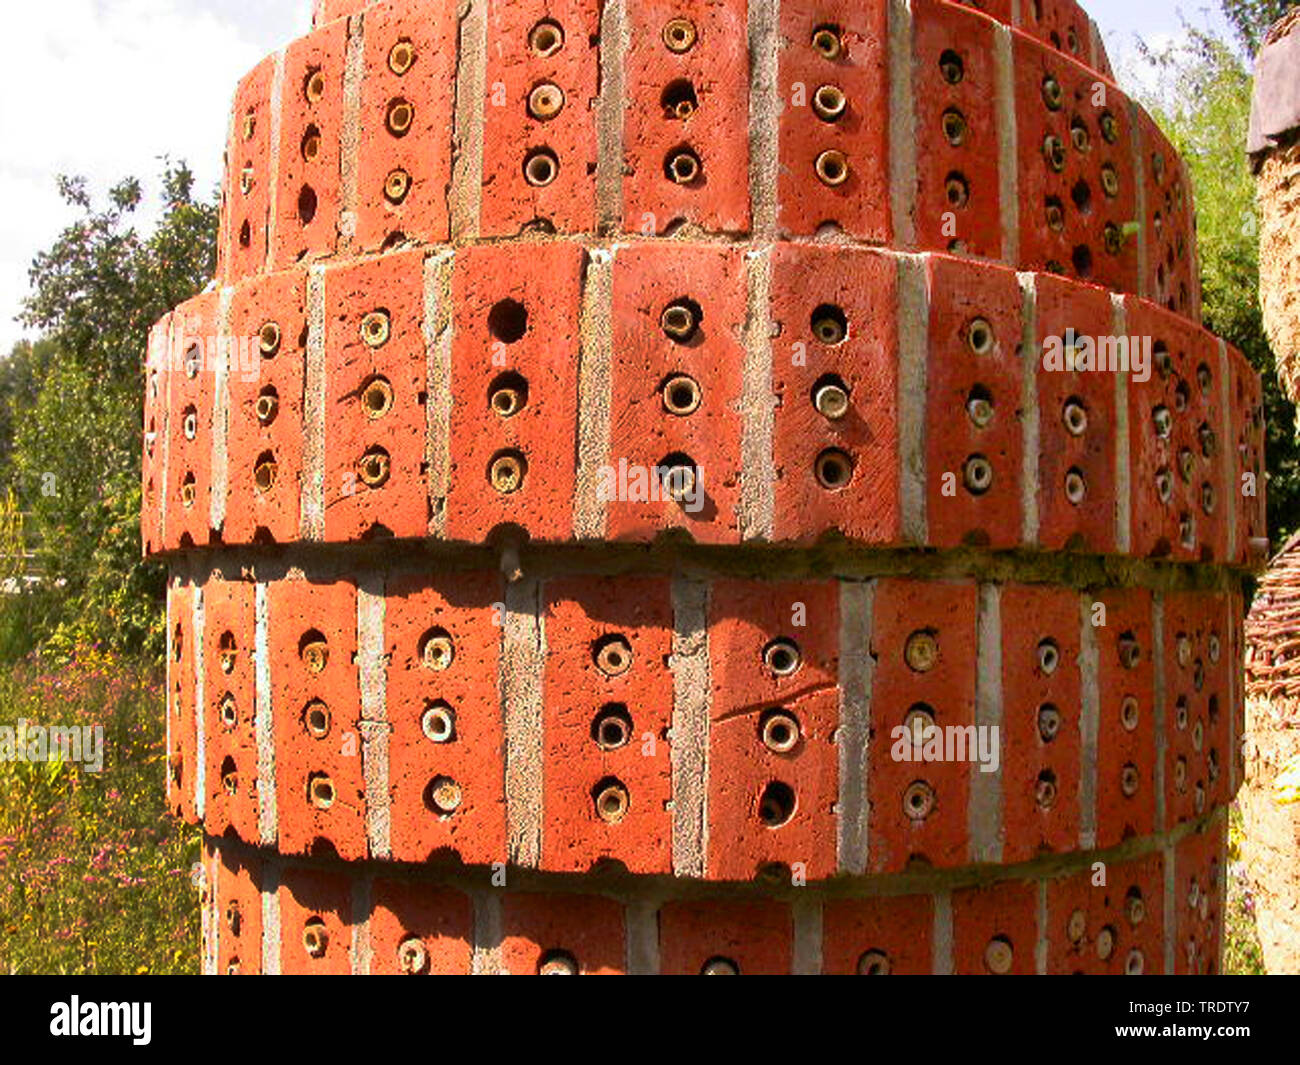 insect hotel as artwork, Germany Stock Photo